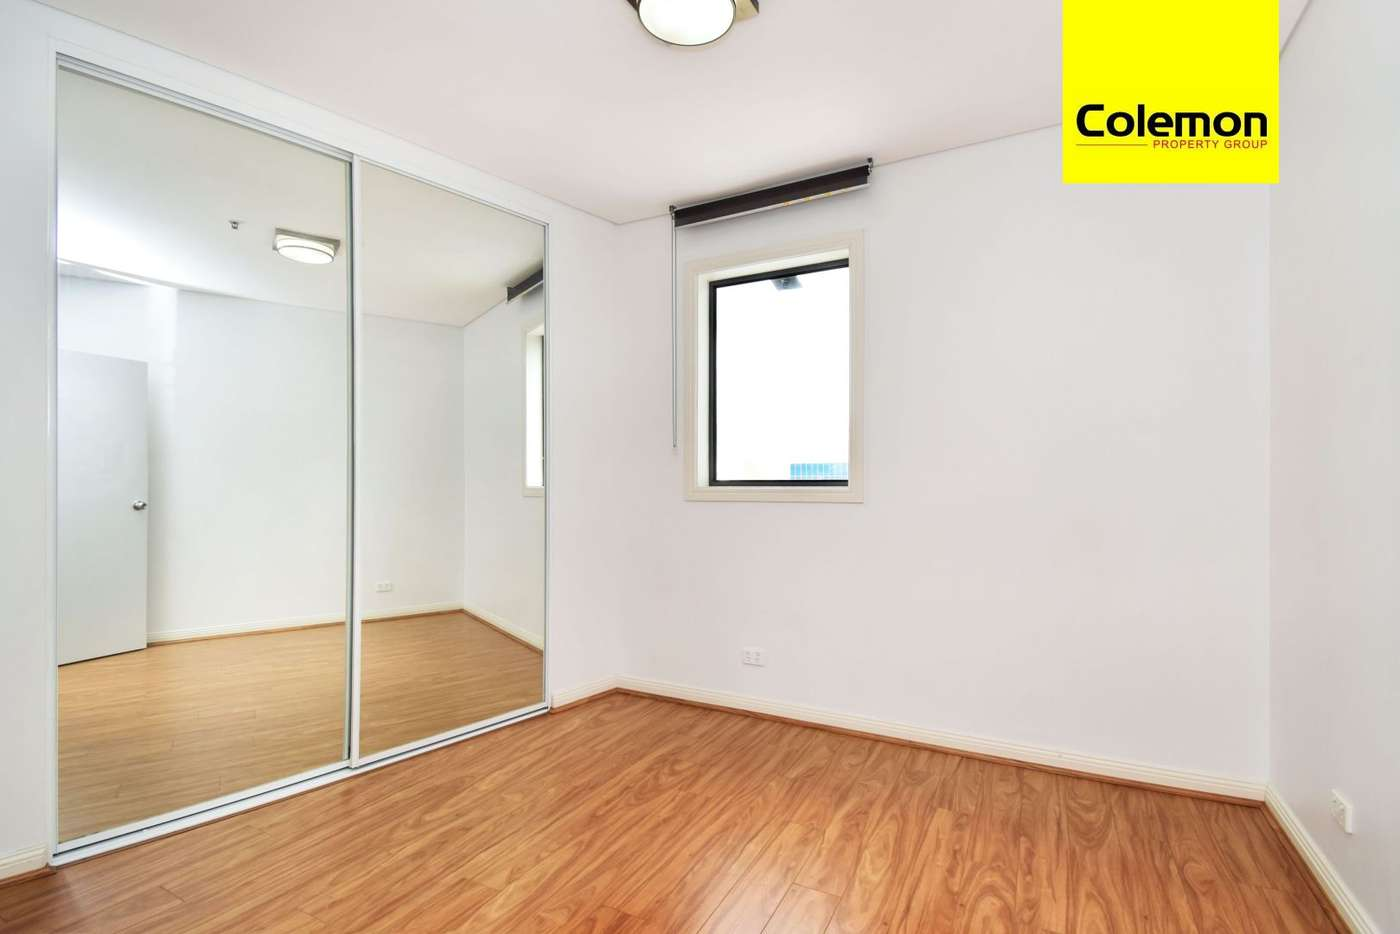 Sixth view of Homely apartment listing, 711/6-10 Charles Street, Parramatta NSW 2150